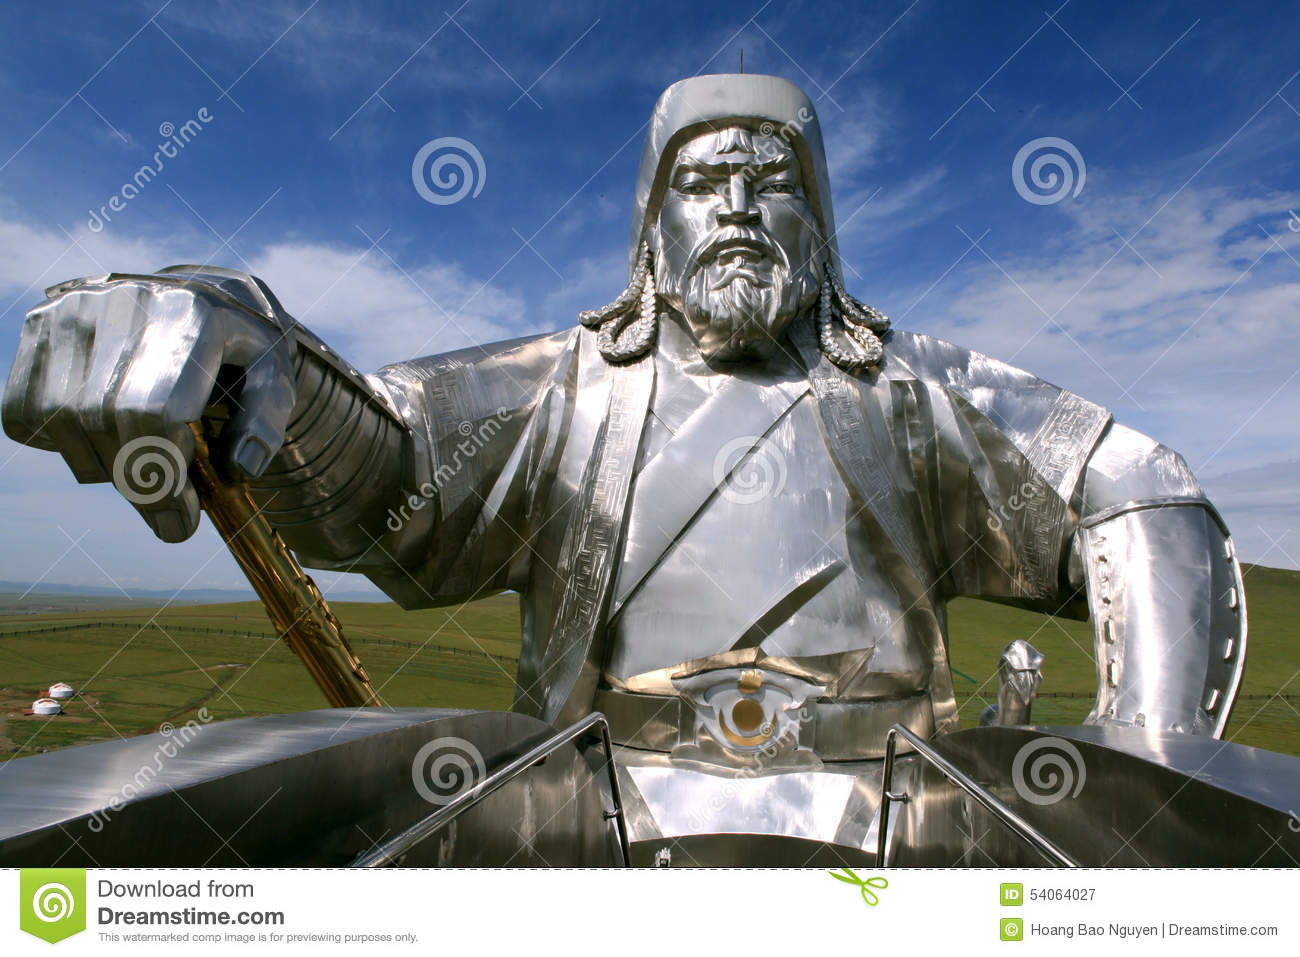 Genghis Khan Equestrian Statue in Mongolië